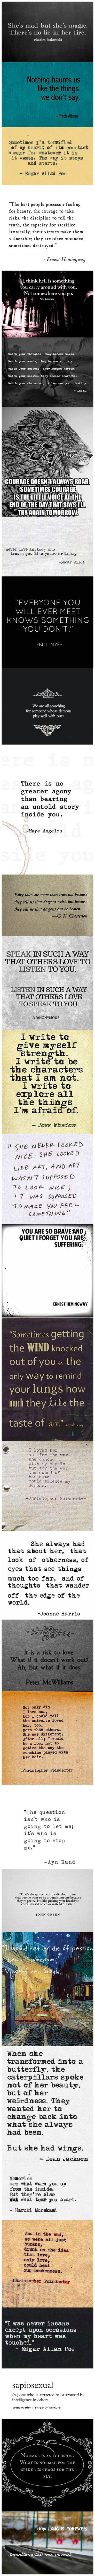 Powerful words people have actually said.